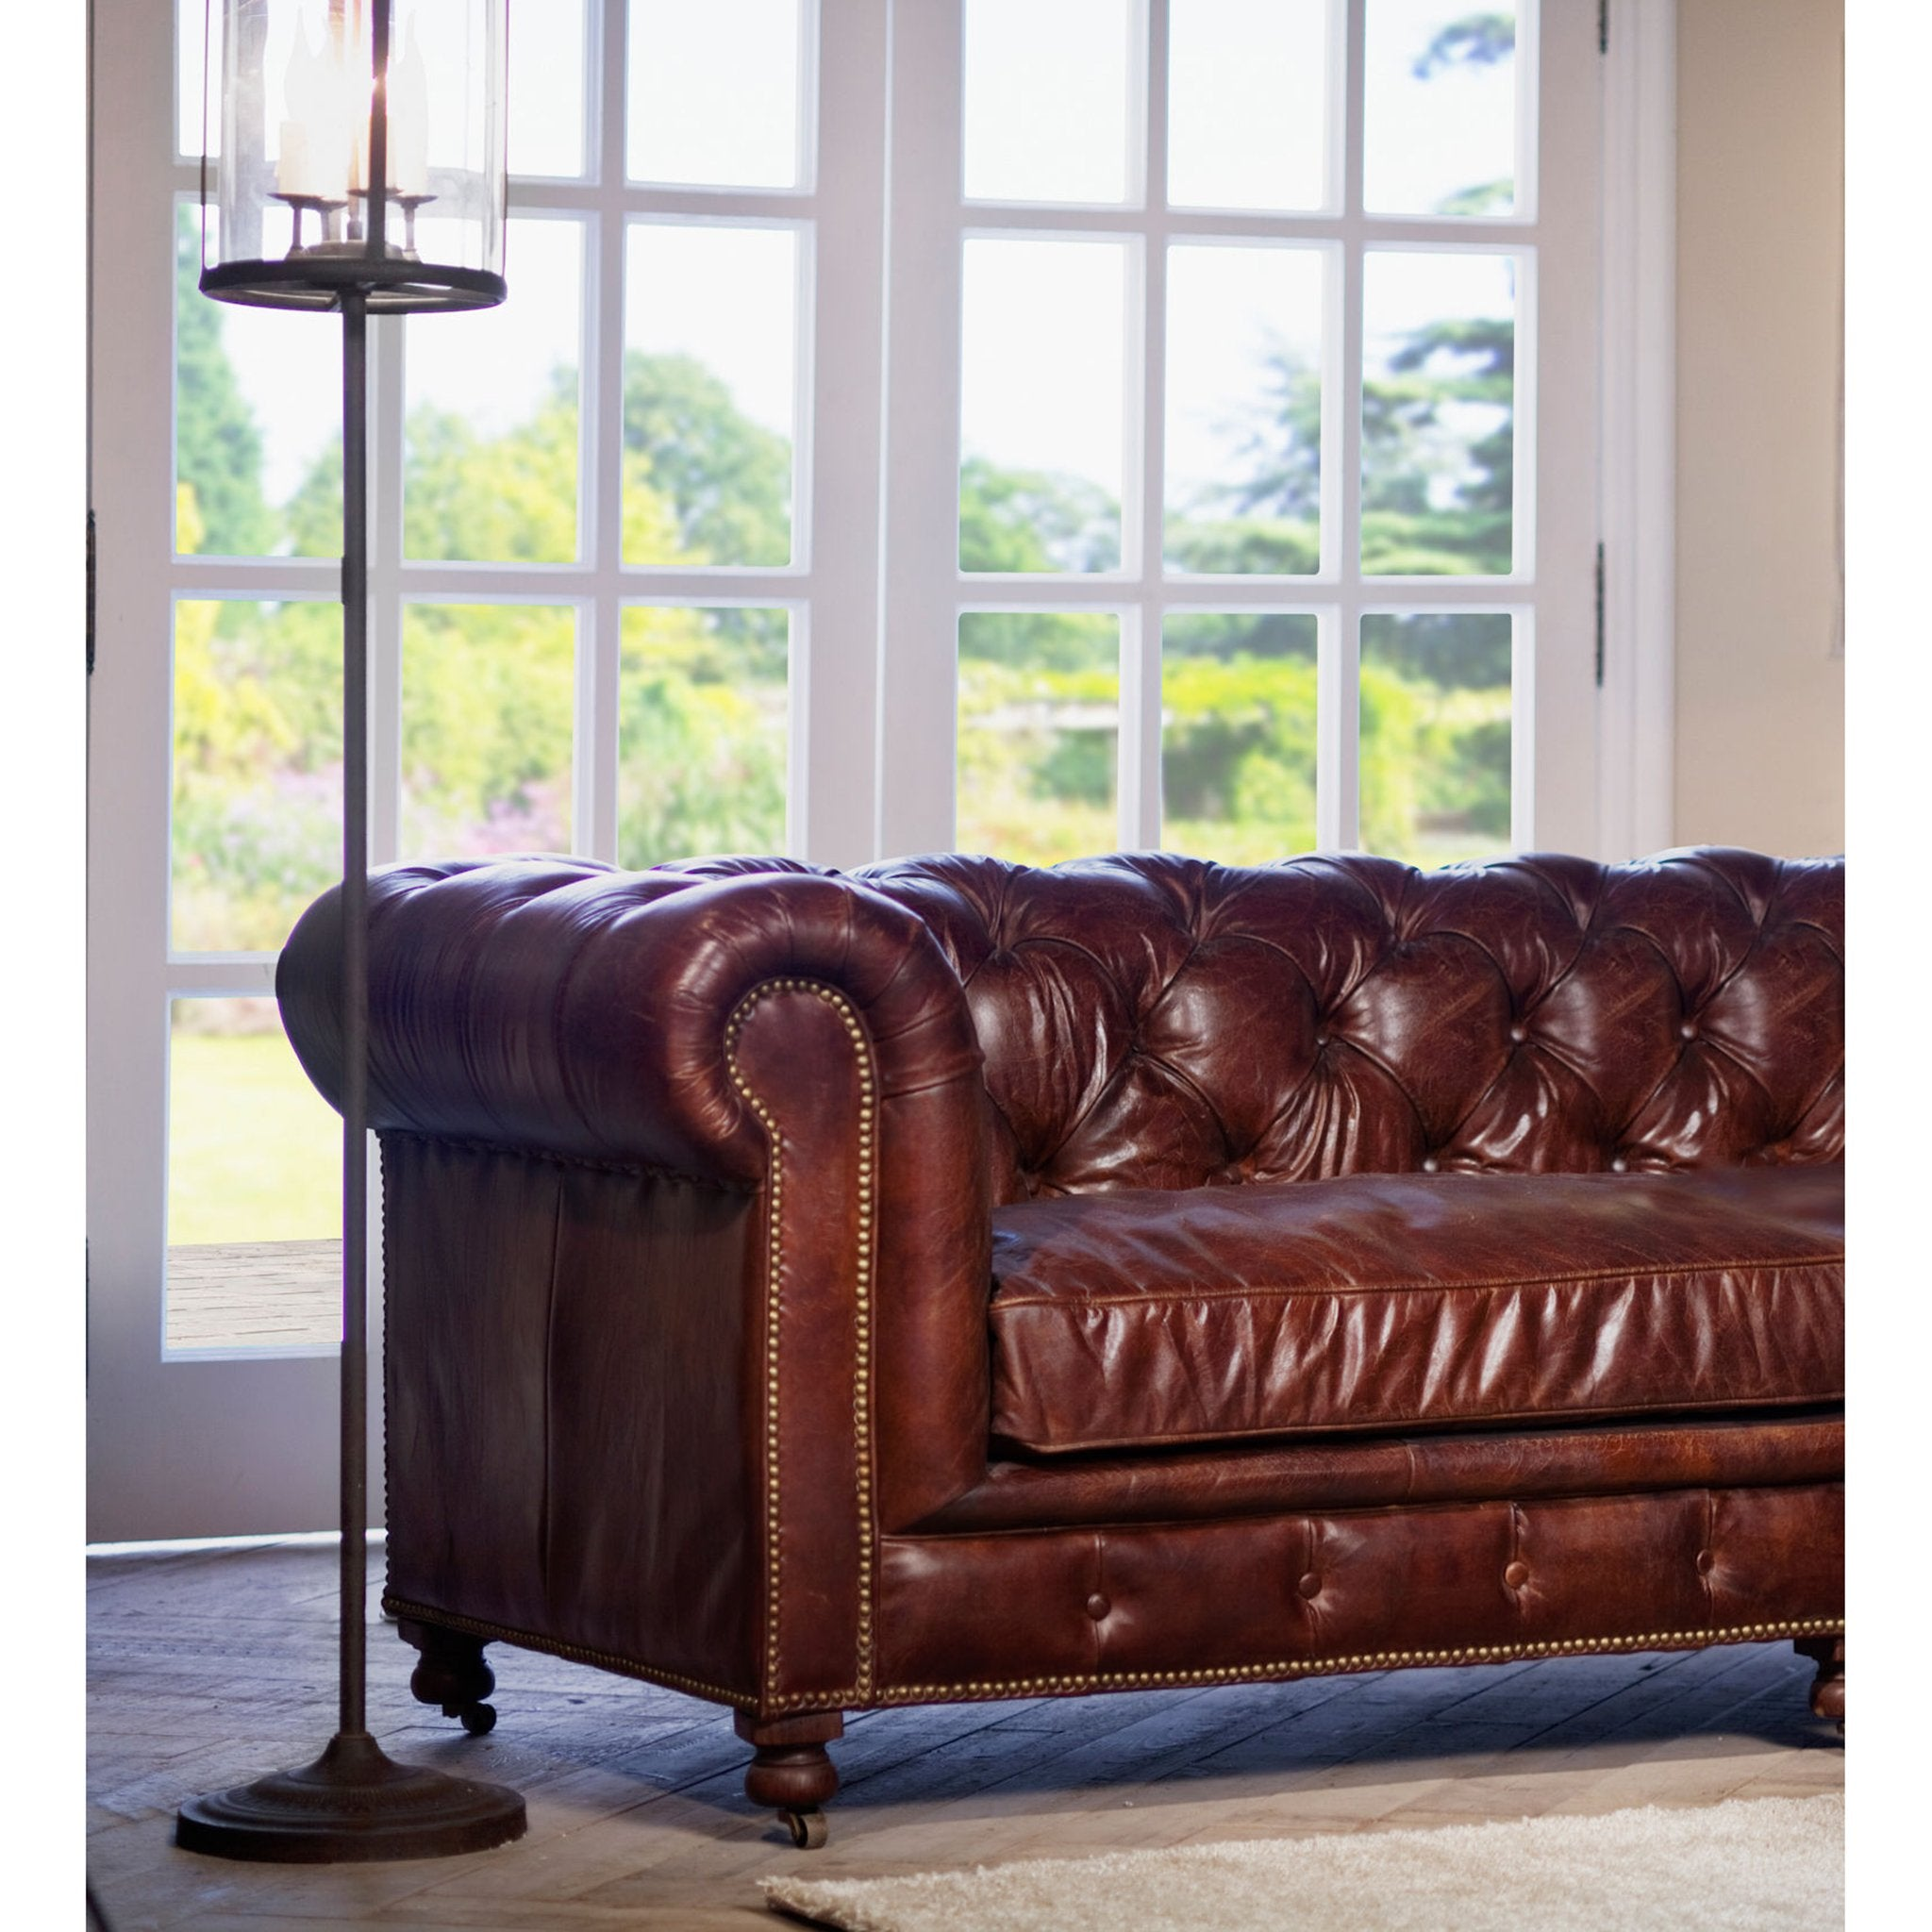 "Chesterfield Style Button Tufted Leather Sofa Vintage Brown 95.5"" - Furniture on Main"